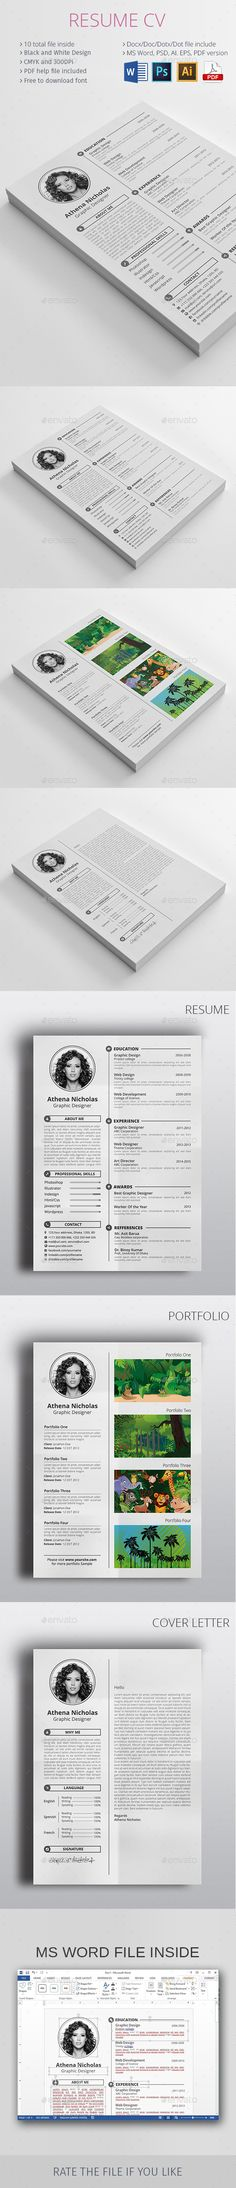 #Resume #CV - Resumes #Stationery Download here: https://graphicriver.net/item/resume-cv/11056630?ref=alena994